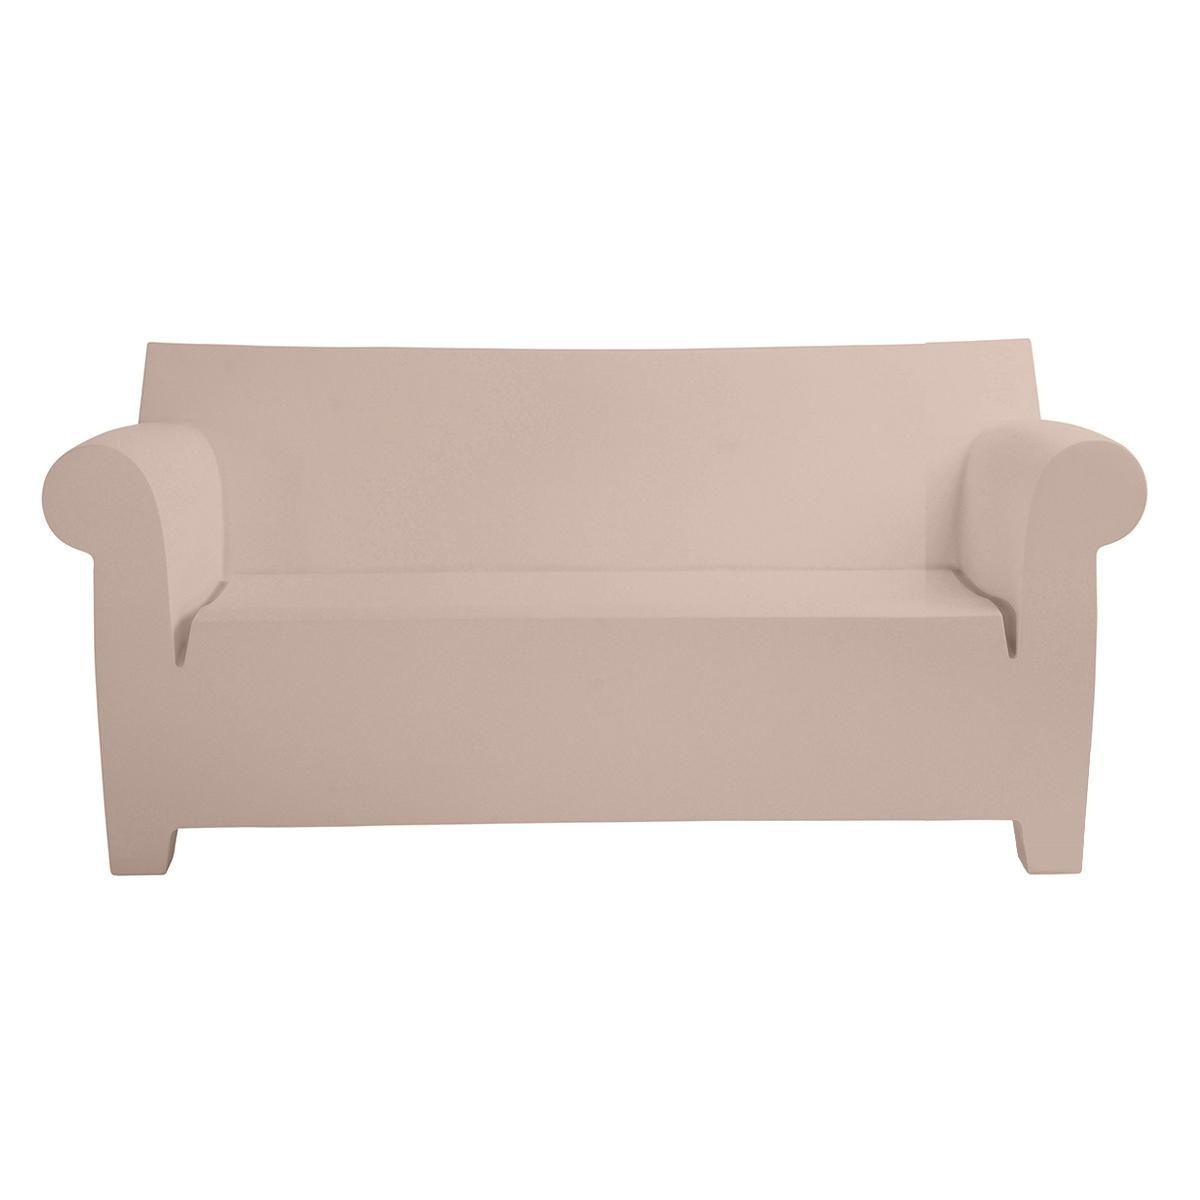 bubble club sofa pasadena power reclining leather canapé deux places kartell